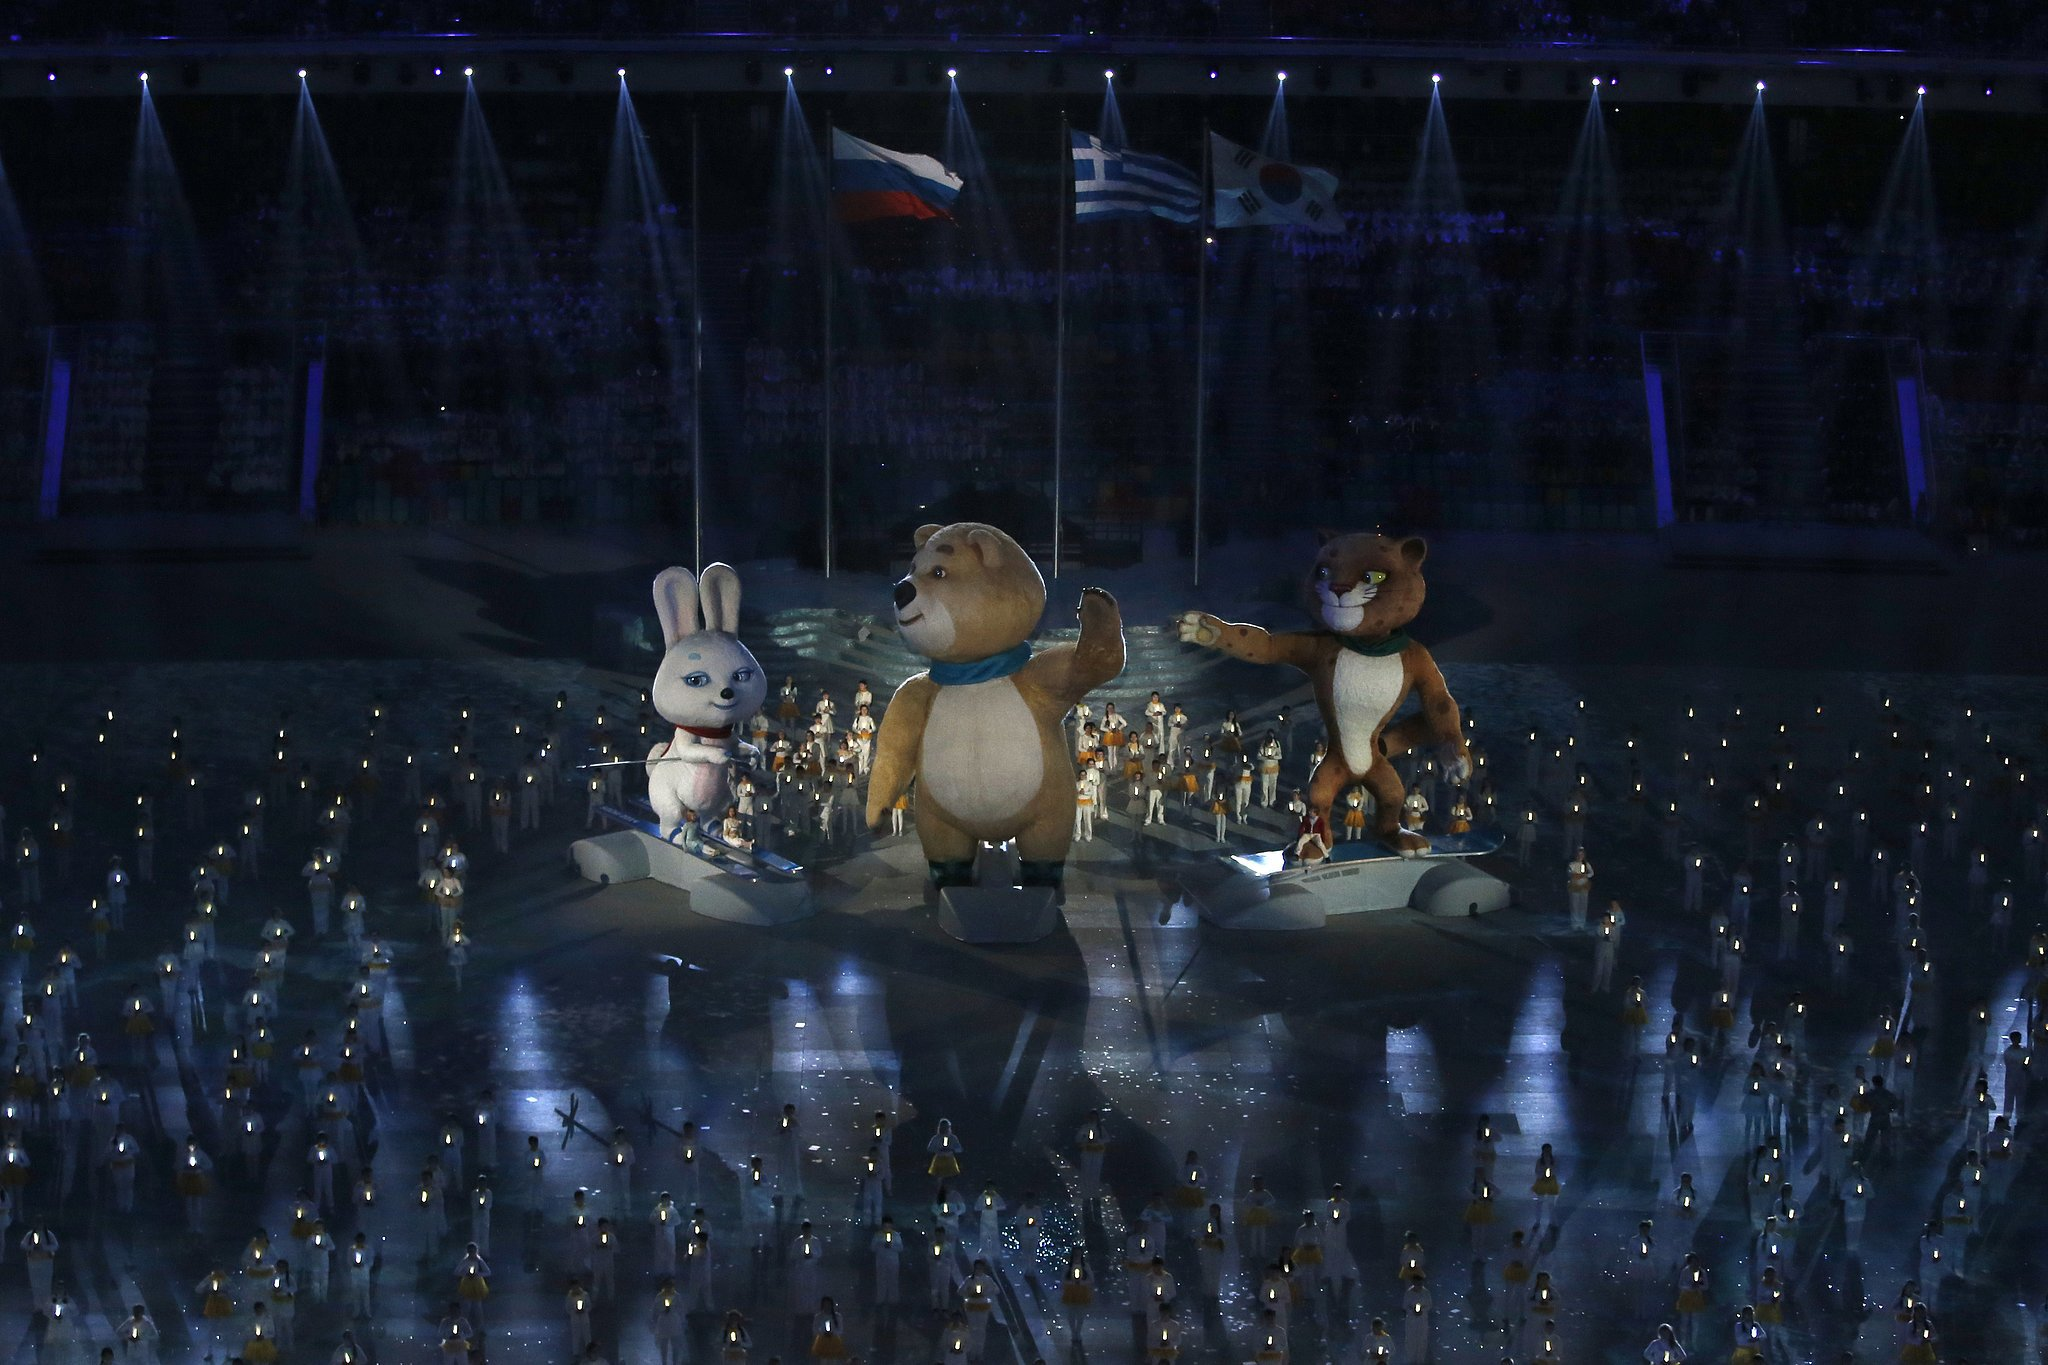 The Sochi bear gave a wave toward the end of the closing ceremony.